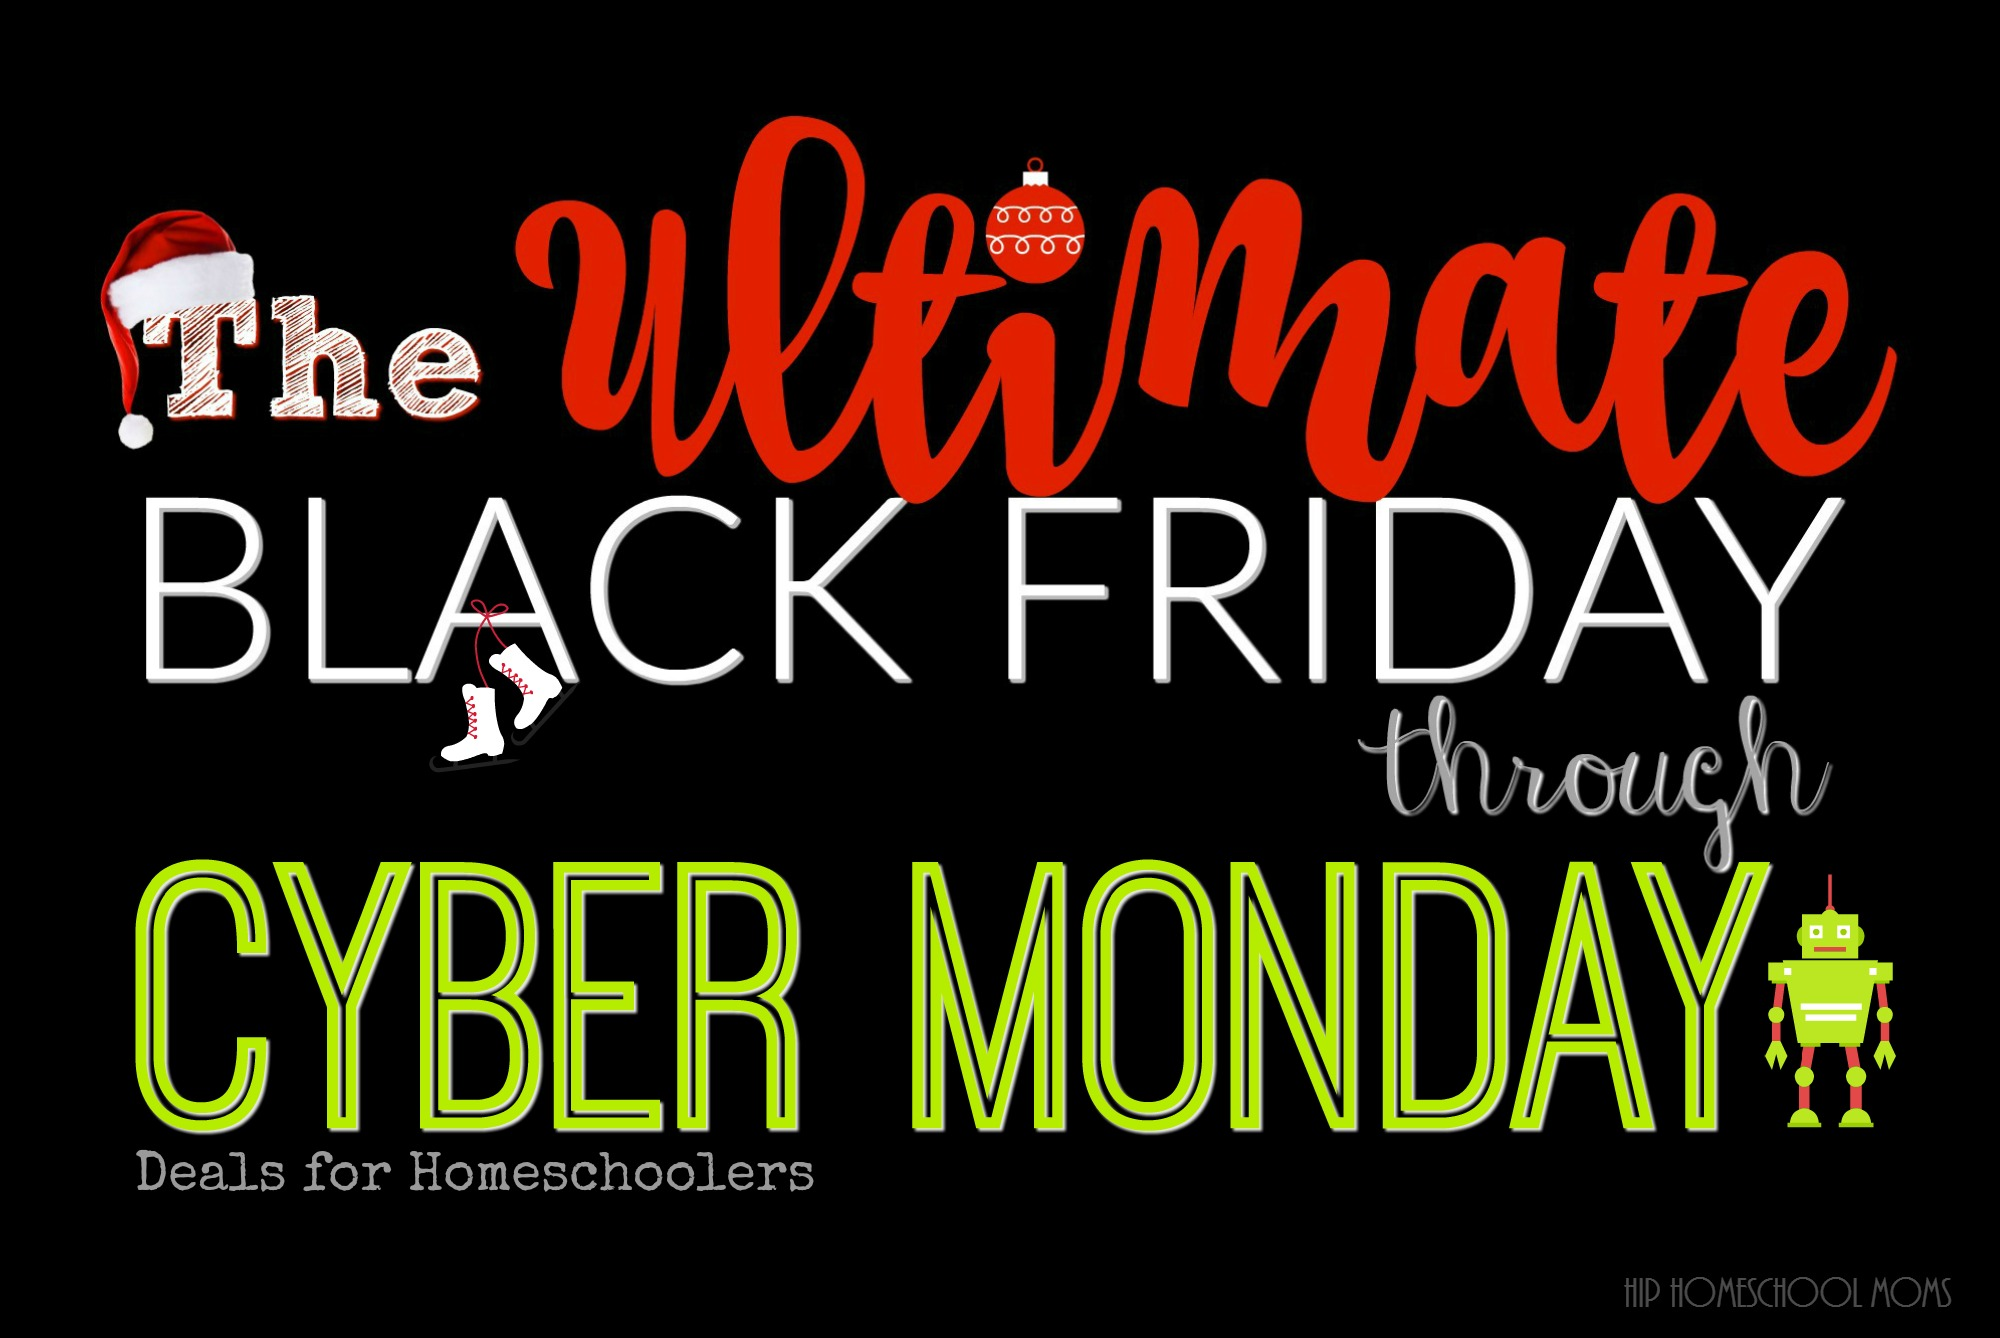 Yeti Cyber Monday Sale >> The ULTIMATE Black Friday through Cyber Monday Deals Guide ...